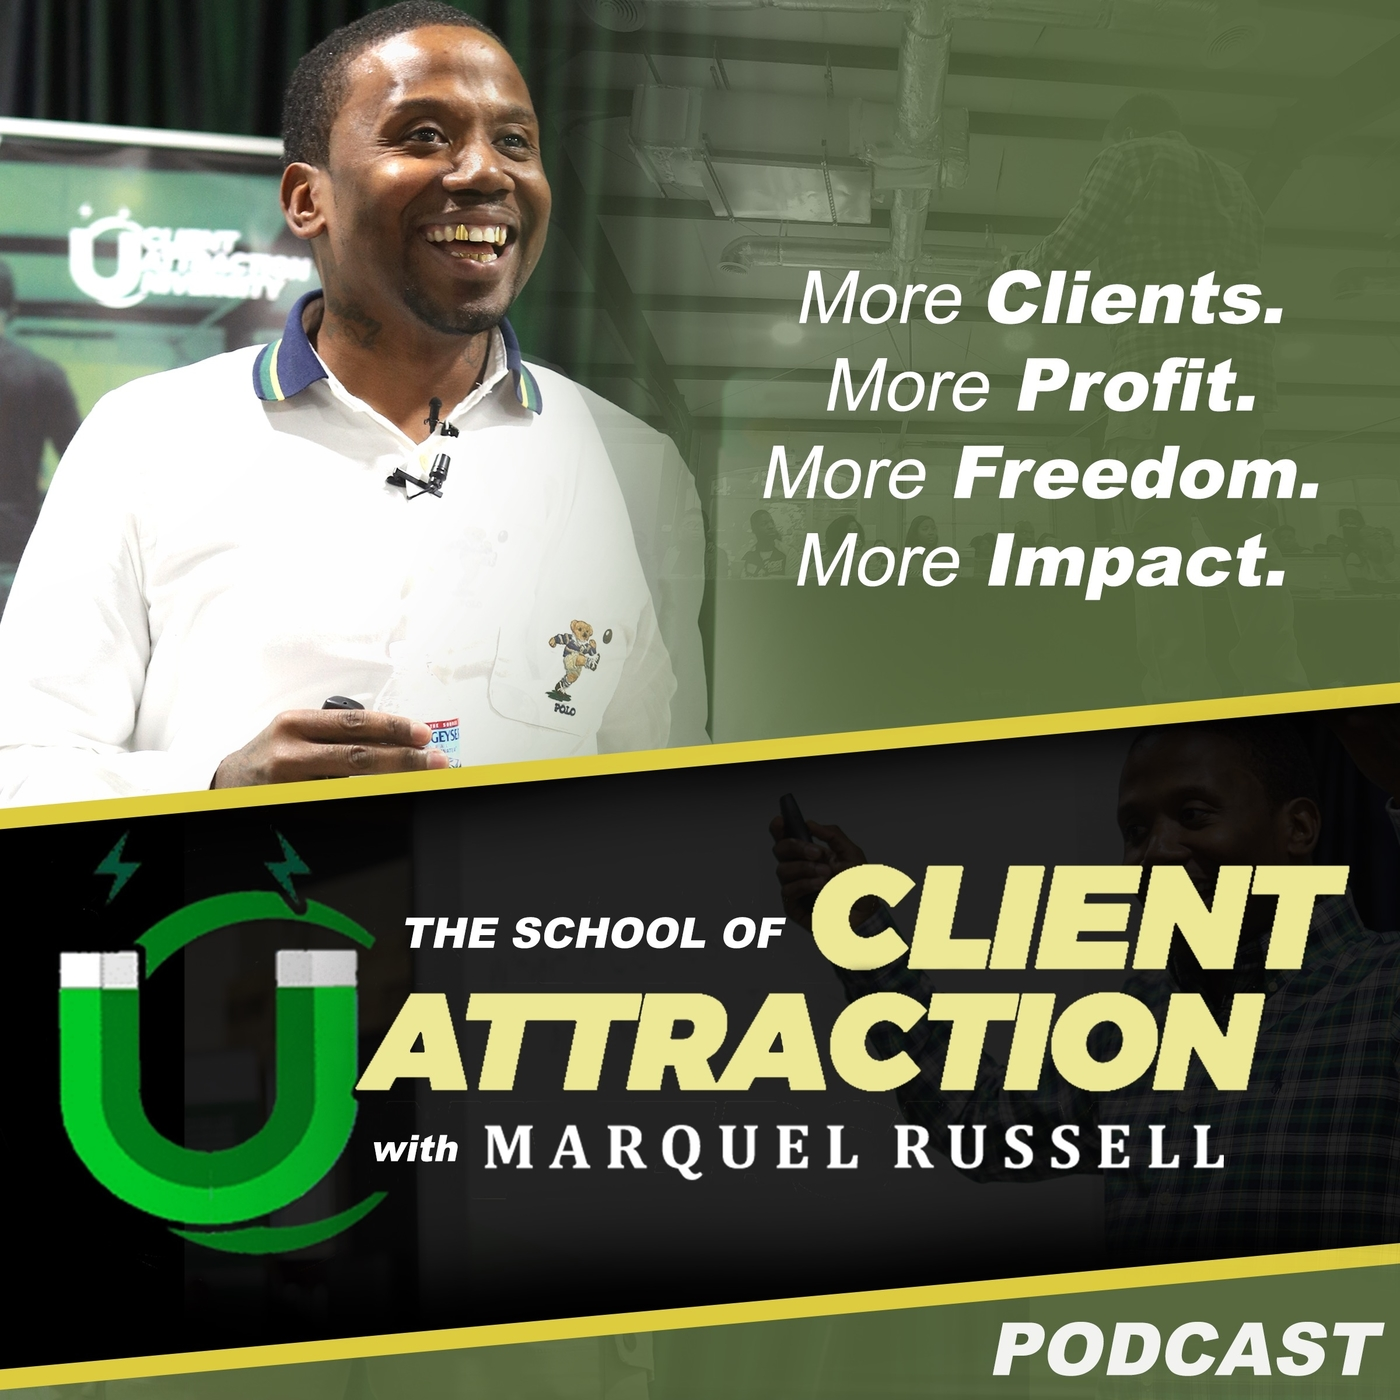 The School Of Client Attraction